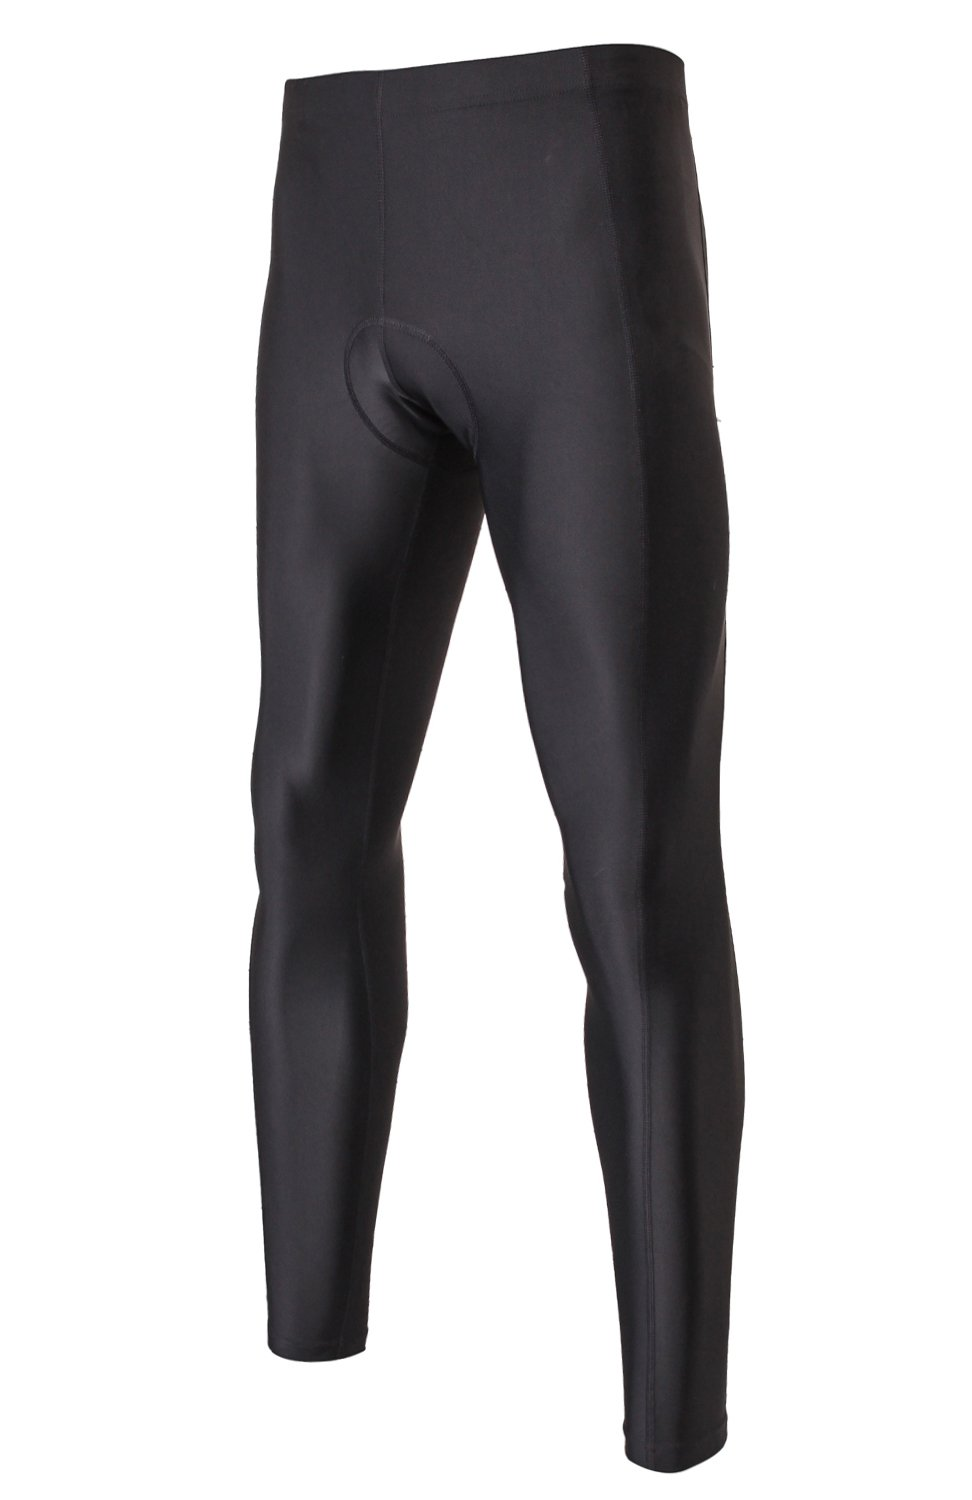 Men's Padded Cycling Tights, Bike Pants for Bicycle Riding, Quick-Dry &Better Fit SEAMOS